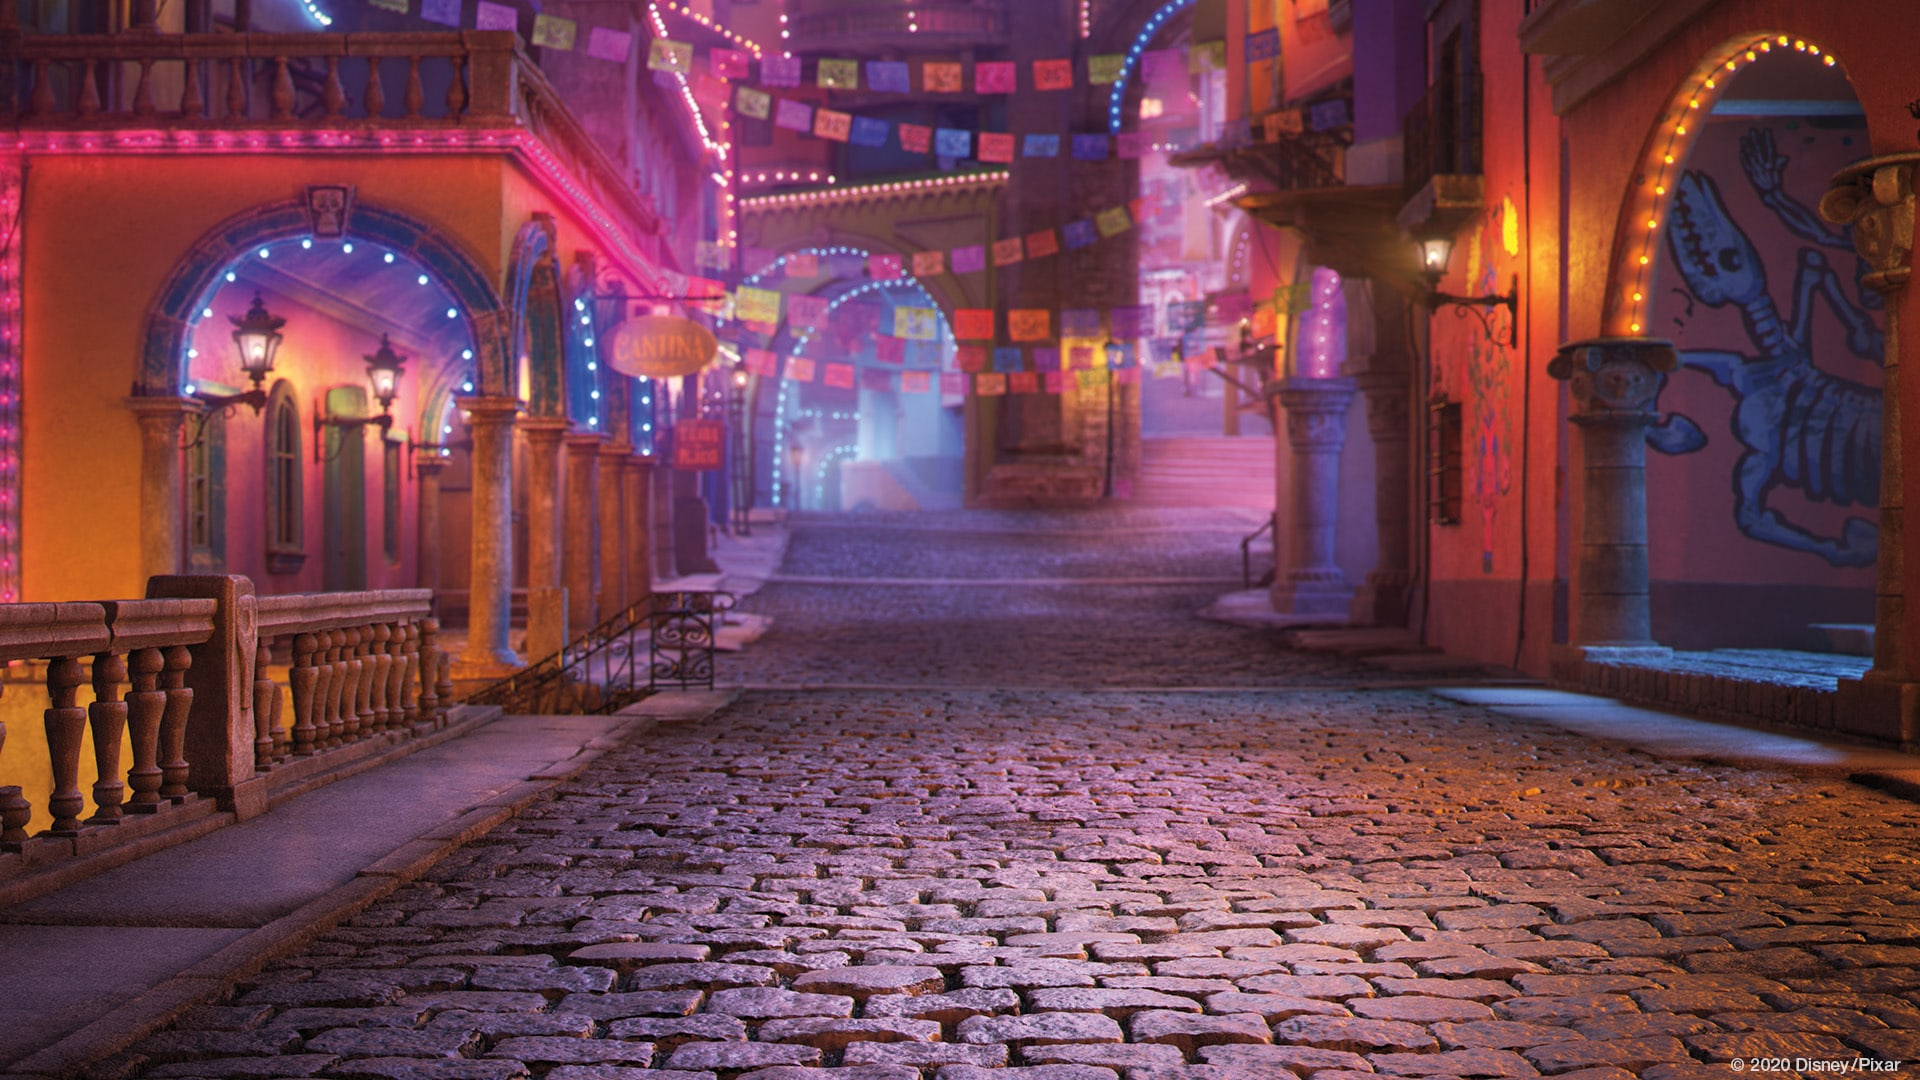 Coco - Streets at nightime from the Disney Pixar movie Coco